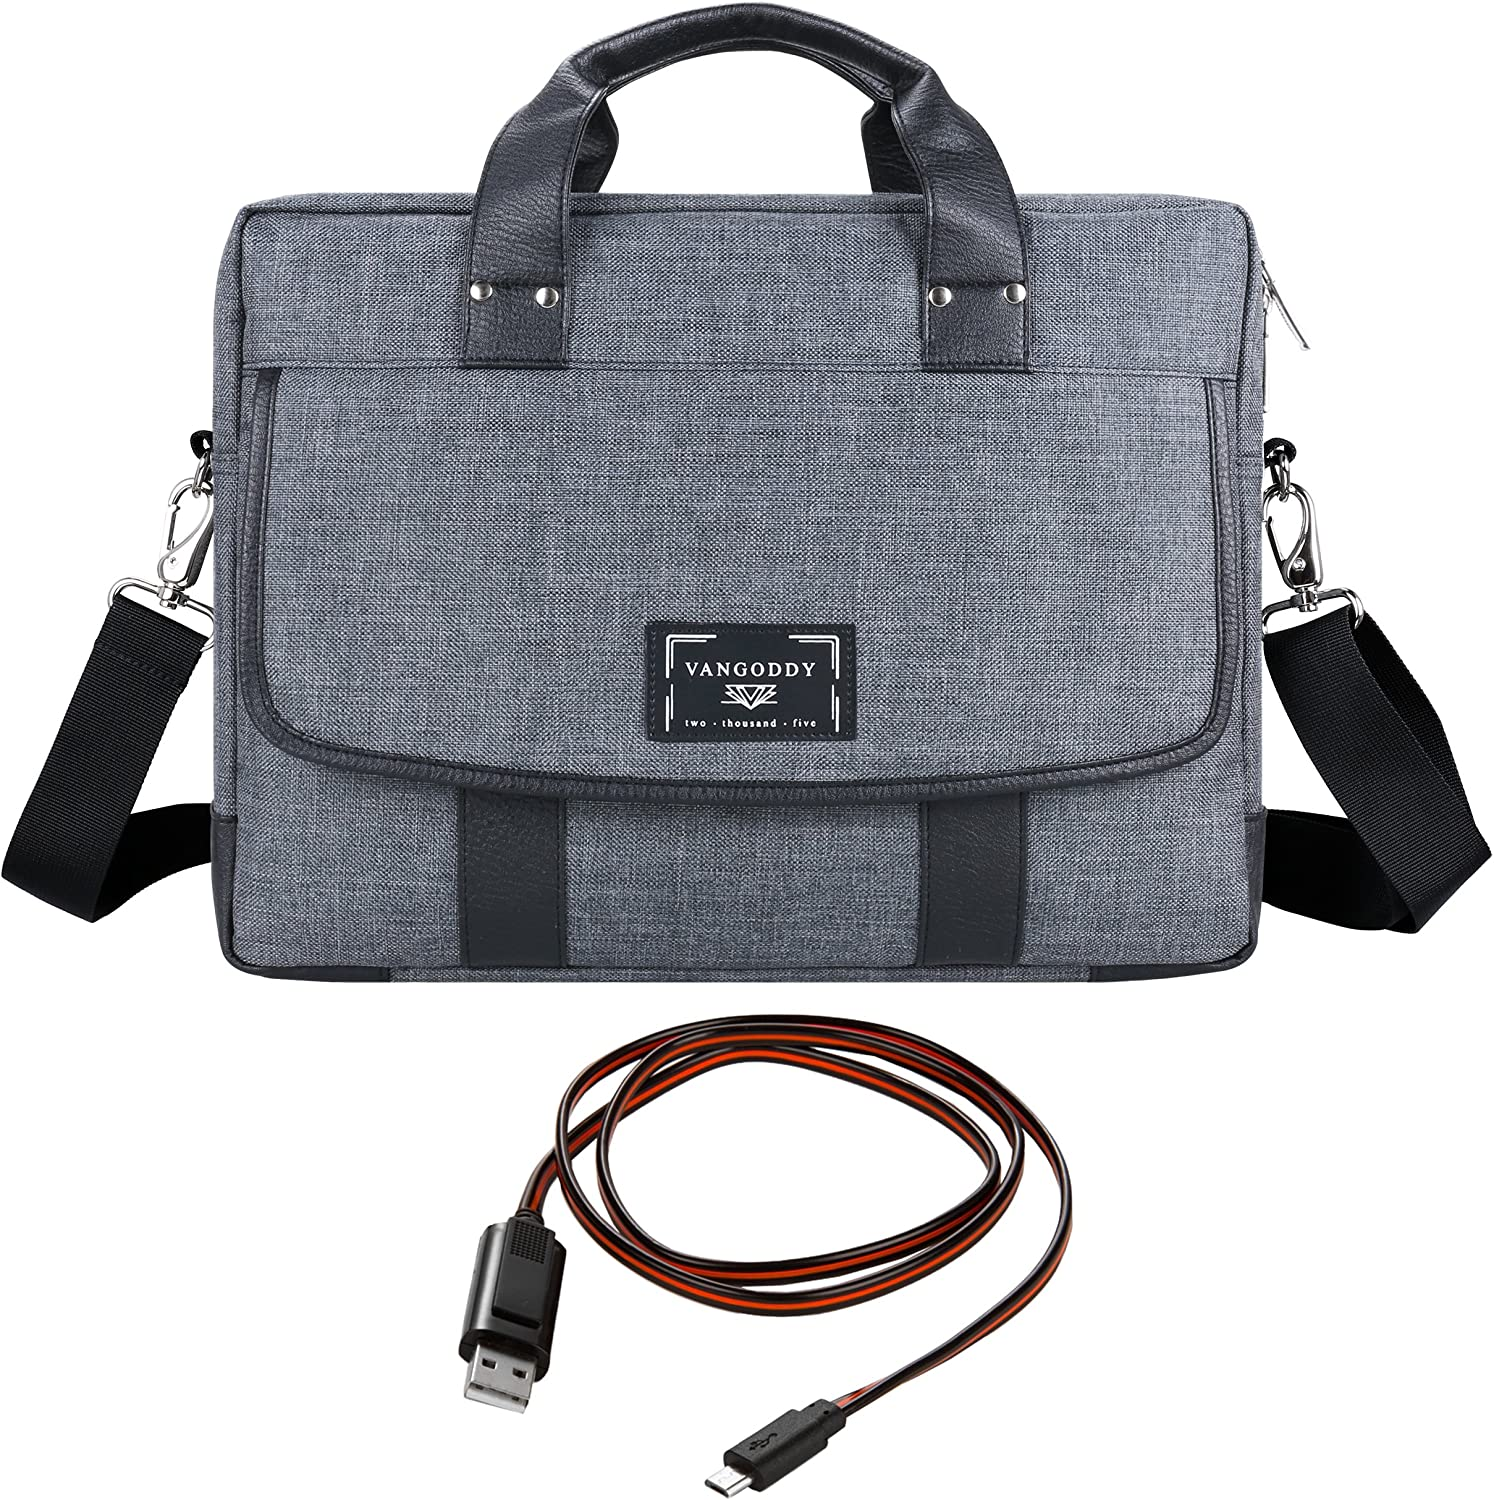 ThinkPad E L P Series 15.6 Laptop and Sync and Charge Cable Chrono Grey Rugged Tote Crossbody Shoulder Bag for Lenovo Flex 3 IdeaPad